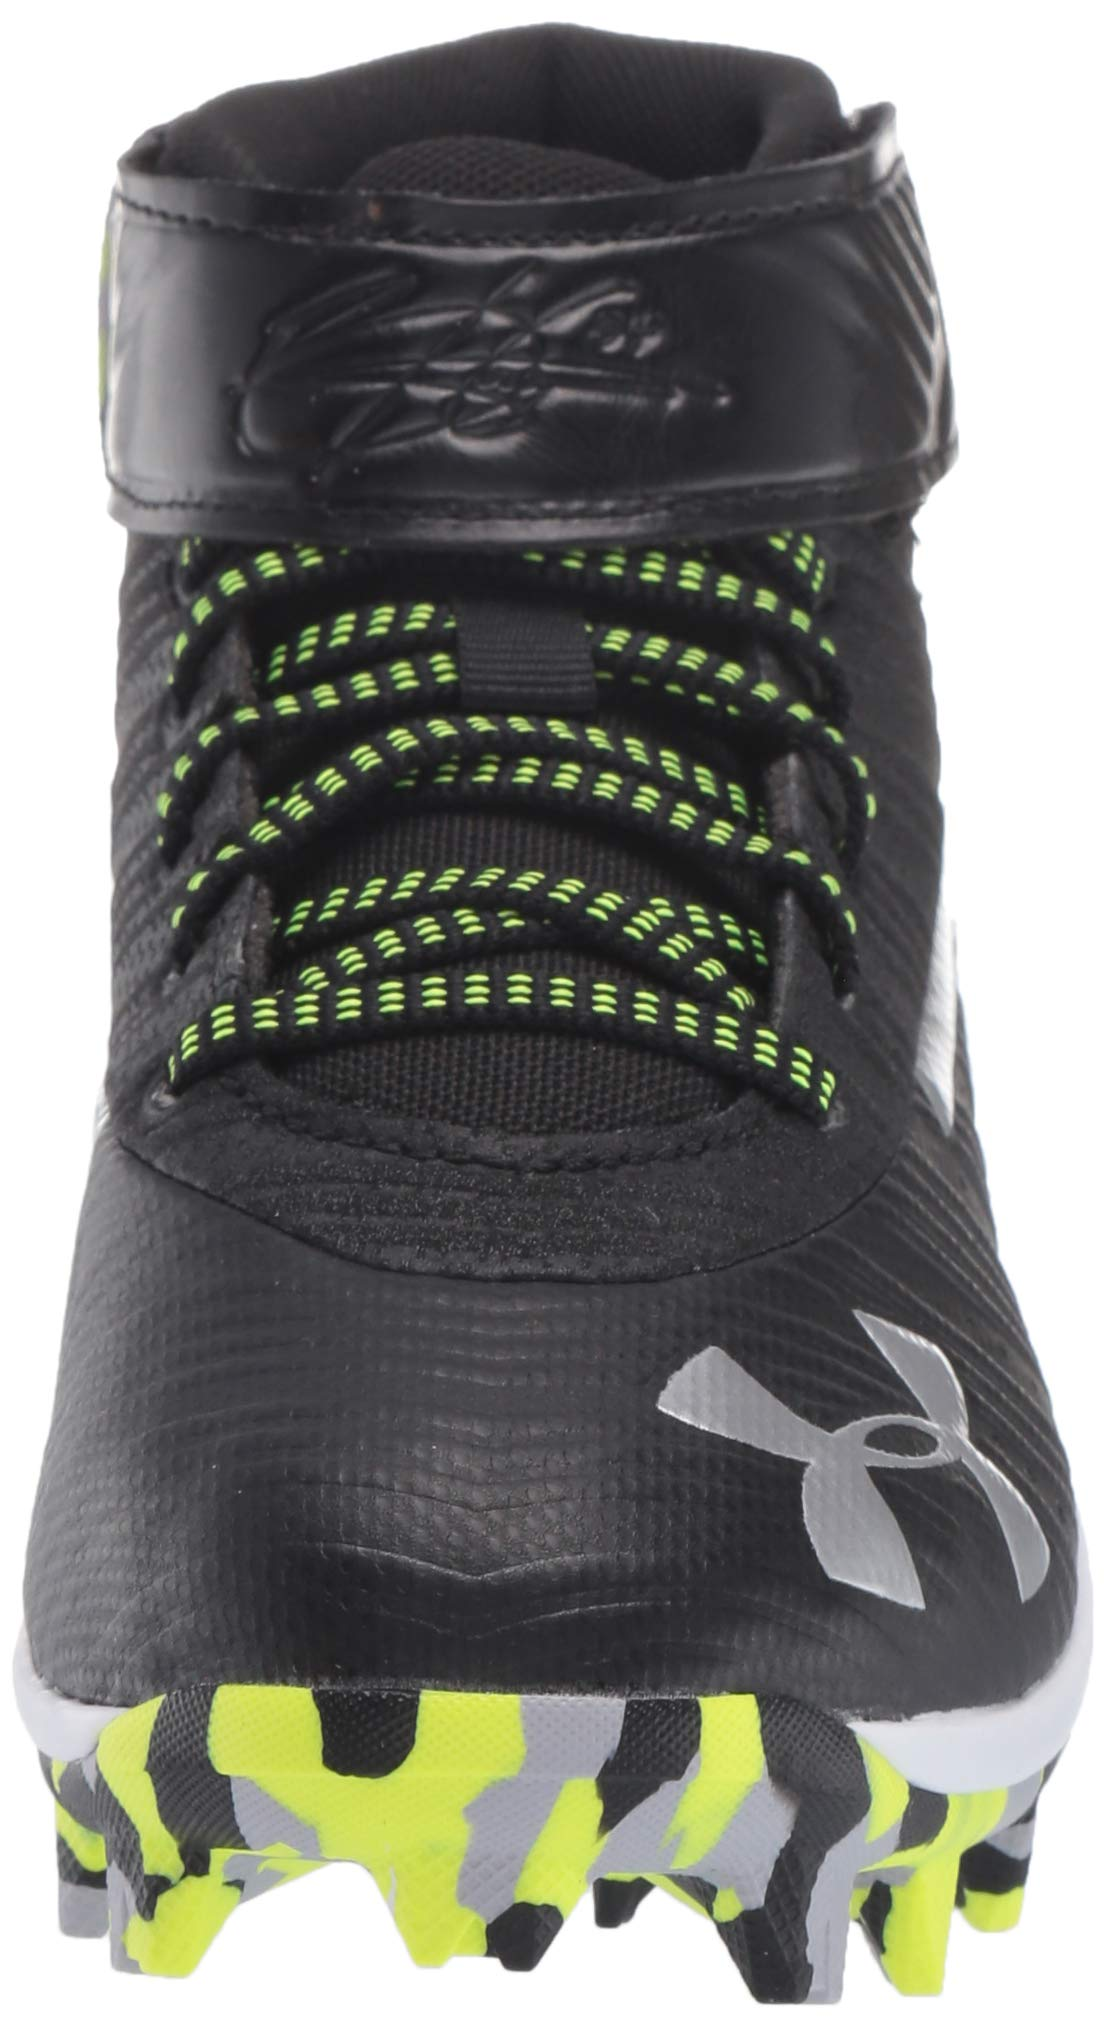 Under Armour Boys' Harper 3 Mid Jr. RM Baseball Shoe Black (001)/White 1.5 by Under Armour (Image #4)